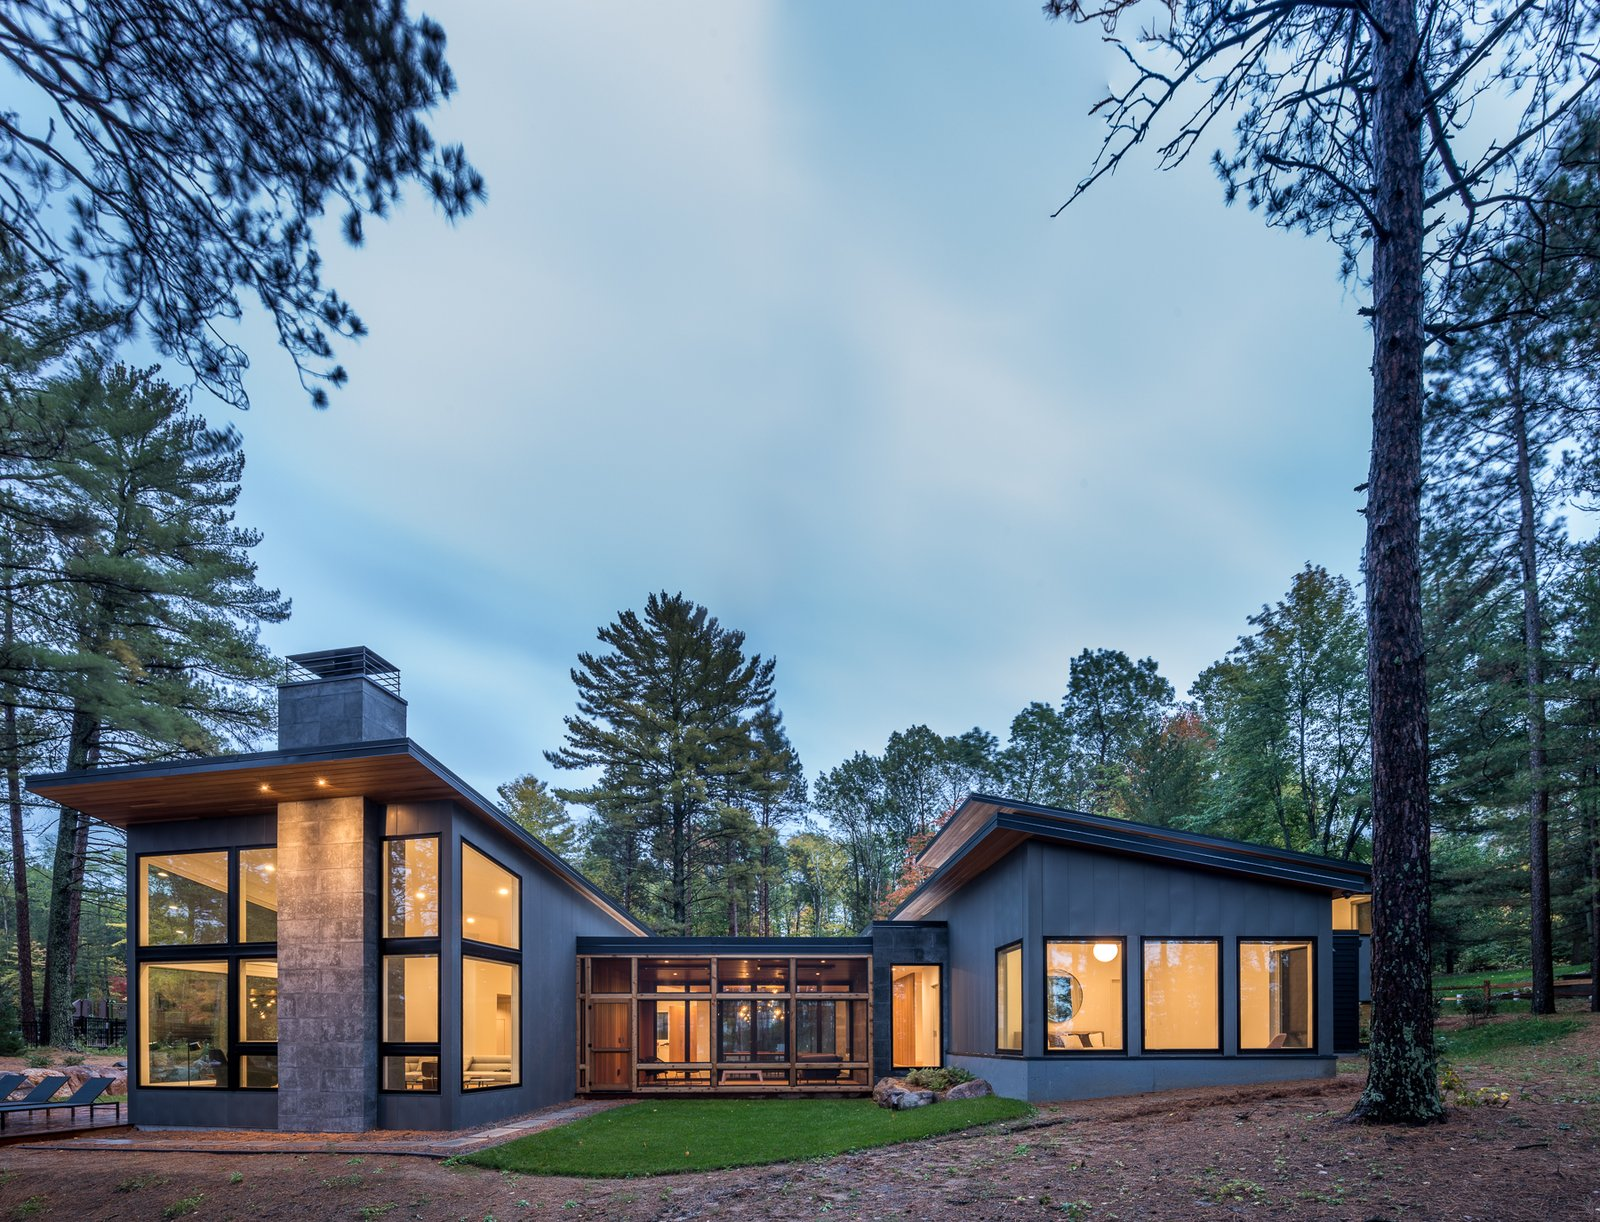 Exterior, Metal Roof Material, House Building Type, Cabin Building Type, Wood Siding Material, Concrete Siding Material, Metal Siding Material, Stone Siding Material, Flat RoofLine, and Shed RoofLine  Northern Lake Home by Strand Design